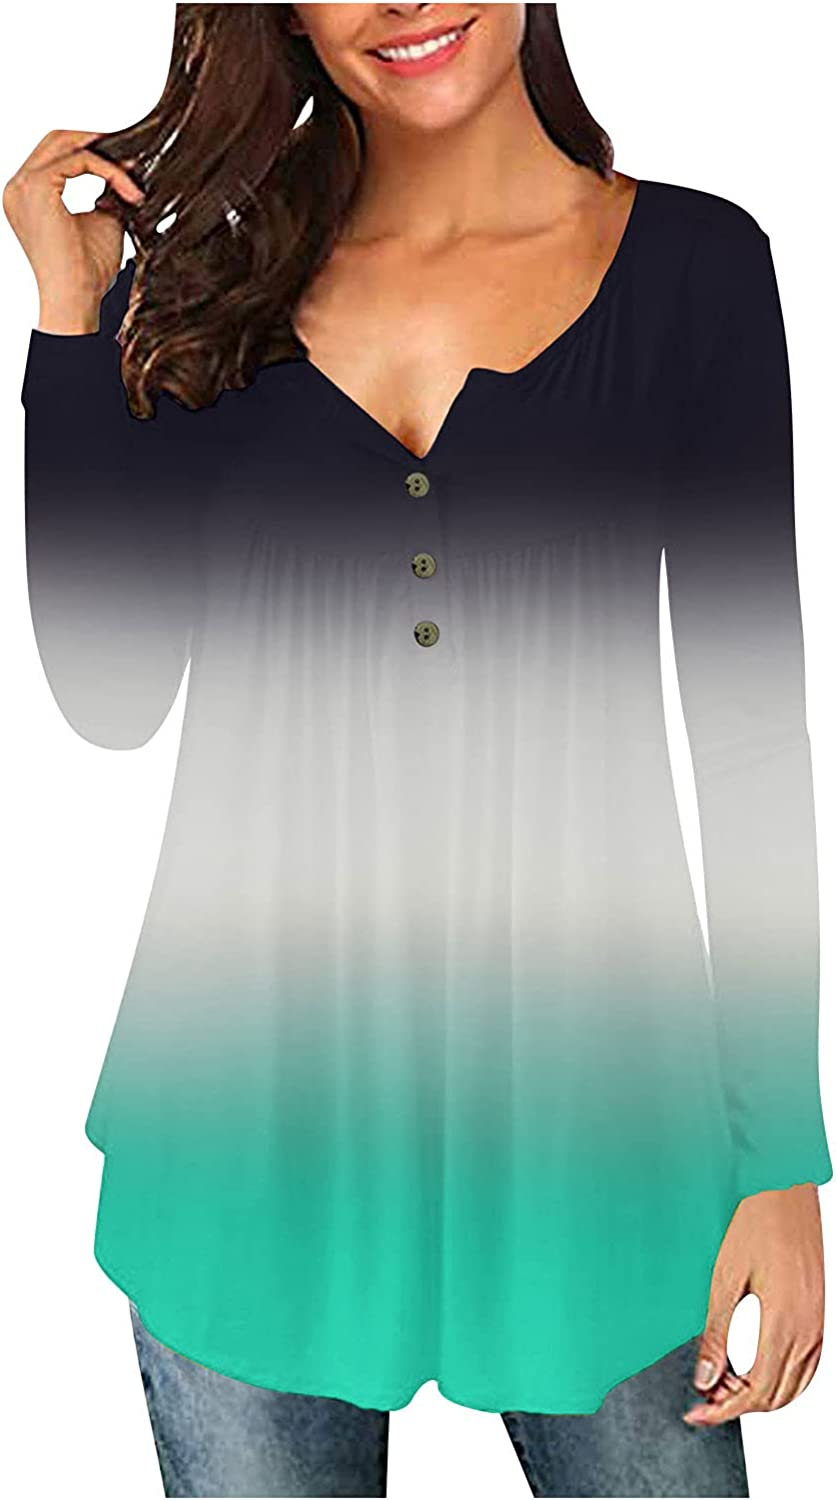 felwors Long Sleeve Shirts for Women, Womens Pullover Tops Button Up Casual Plus Size Long Sleeve Crewneck Tunics